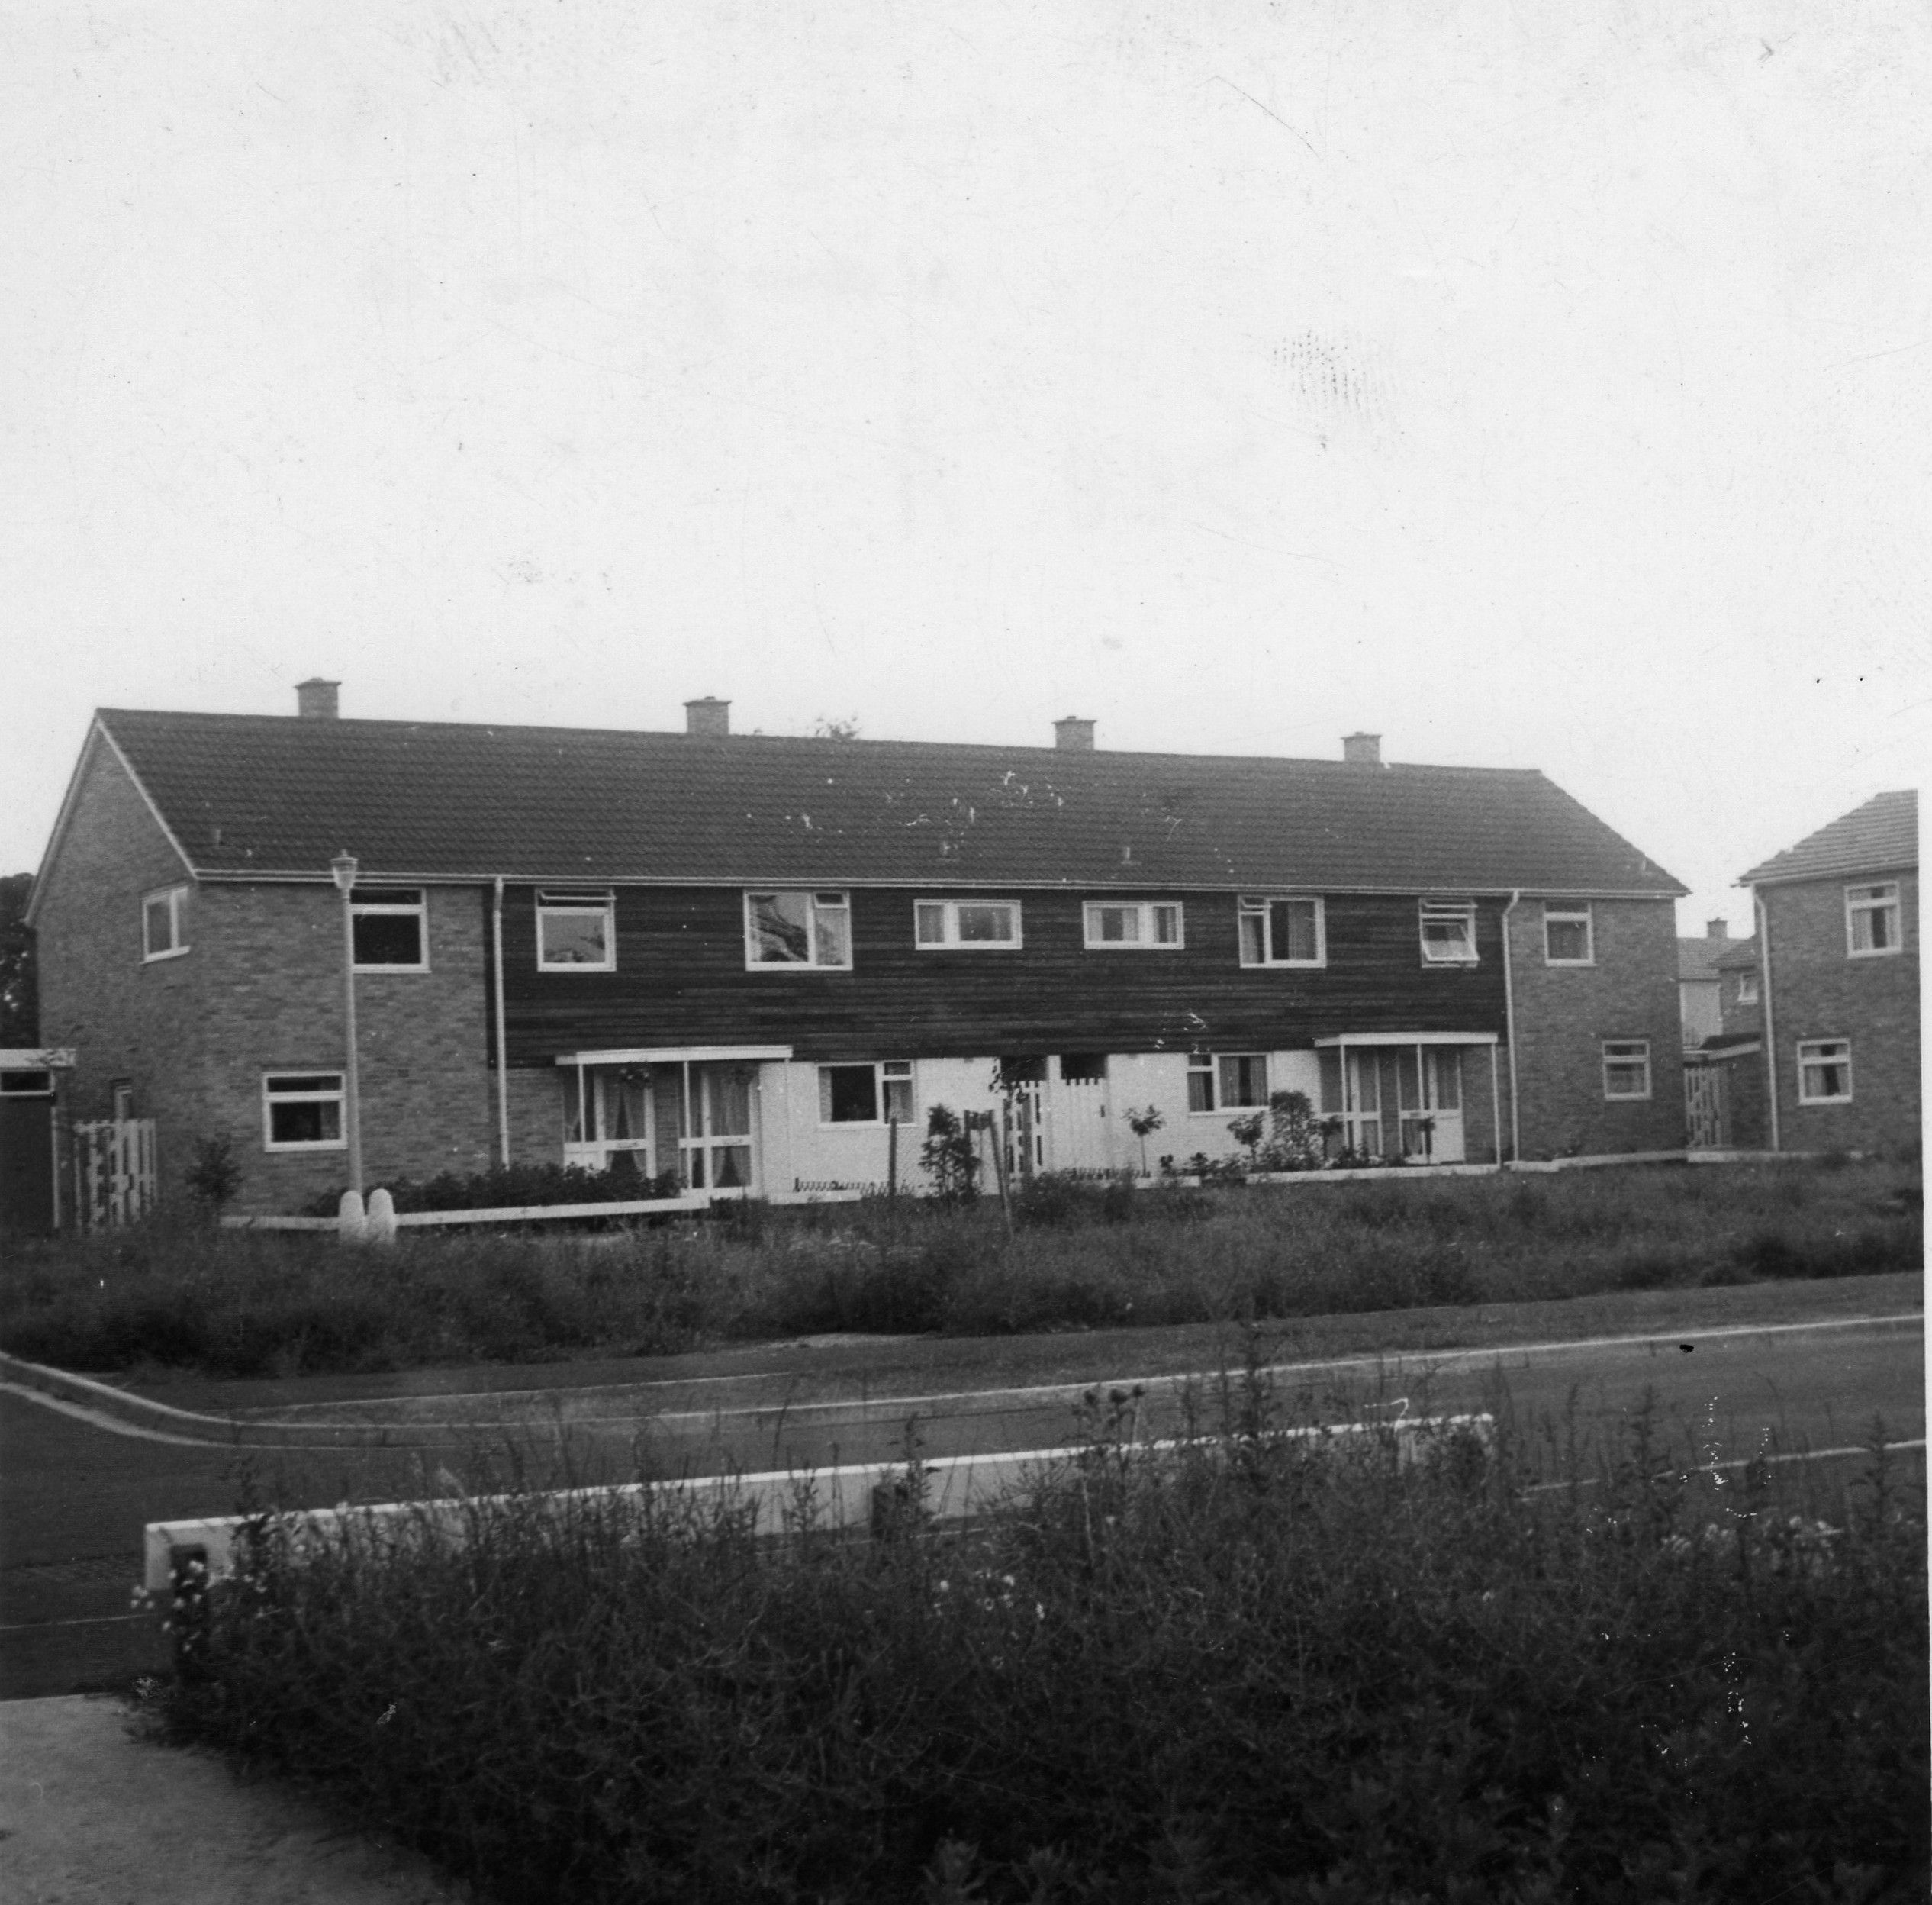 View Of Houses In Springbrook From 10 Springbrook In Eynesbury In 1962 When They Were New Views House 20th Century